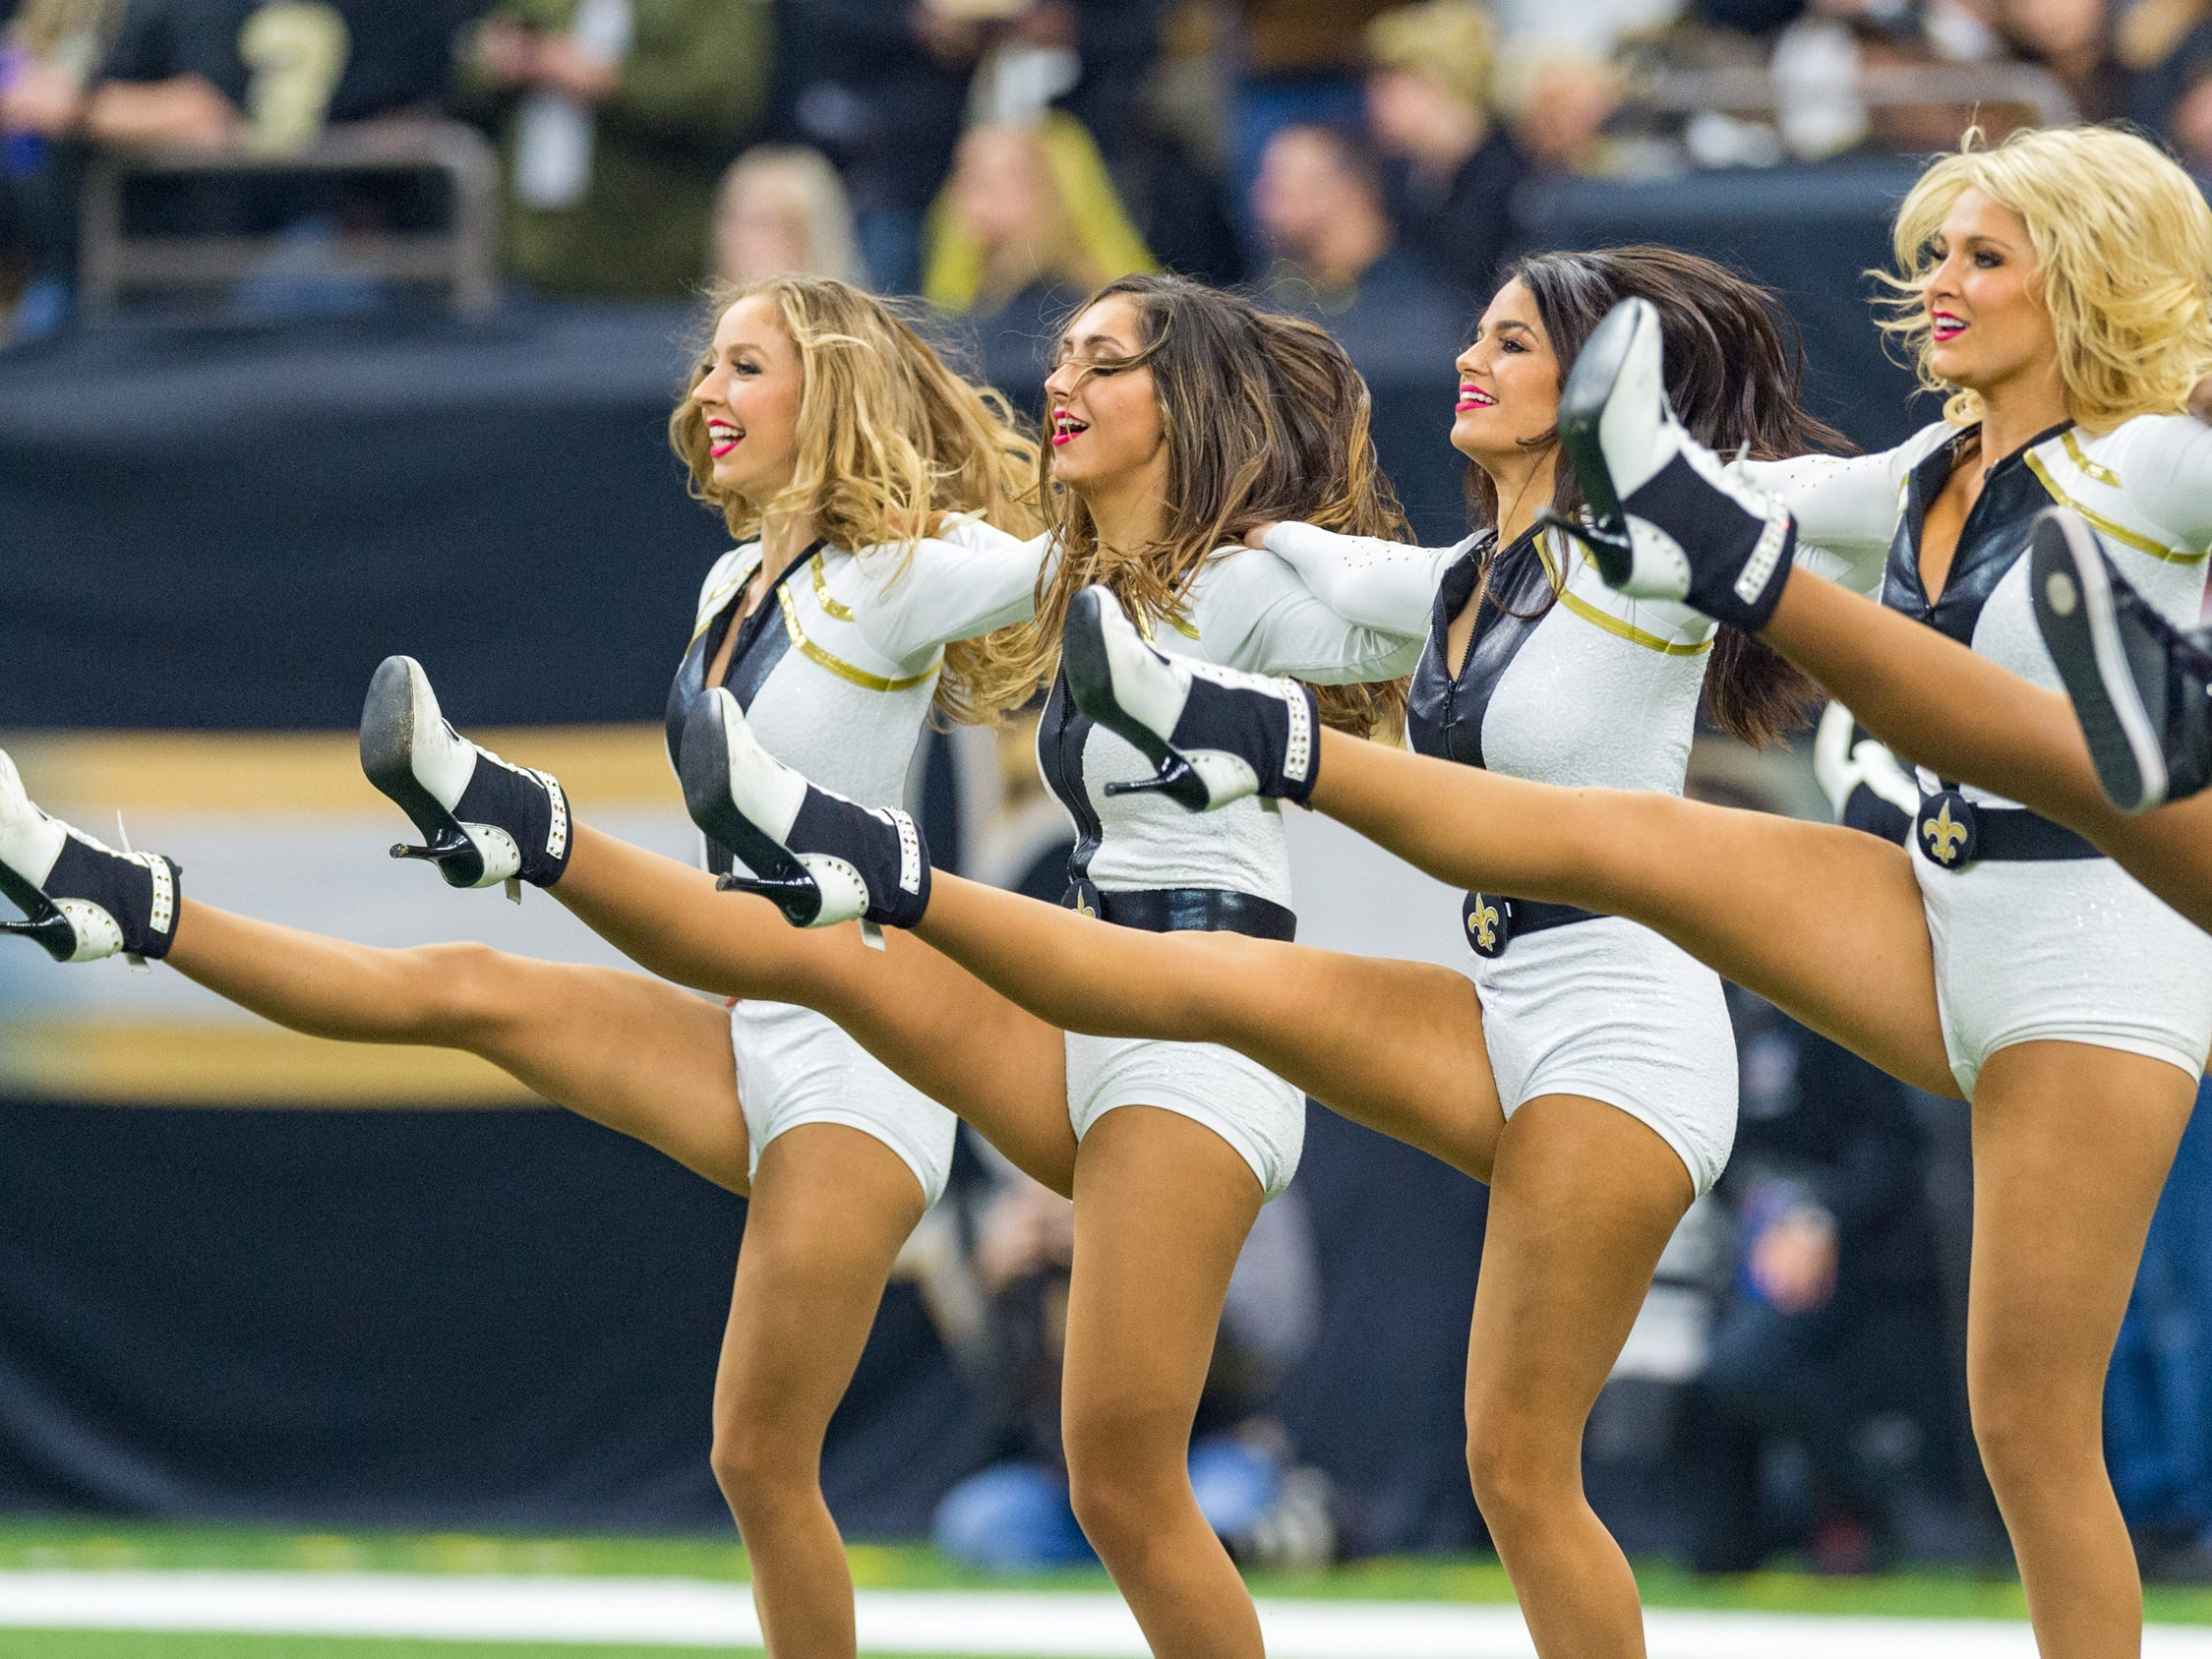 The Saintsations perform during the NFC Championship playoff football game between the New Orleans Saints and the Los Angeles Rams at the Mercedes-Benz Superdome in New Orleans. Sunday, Jan. 20, 2019.